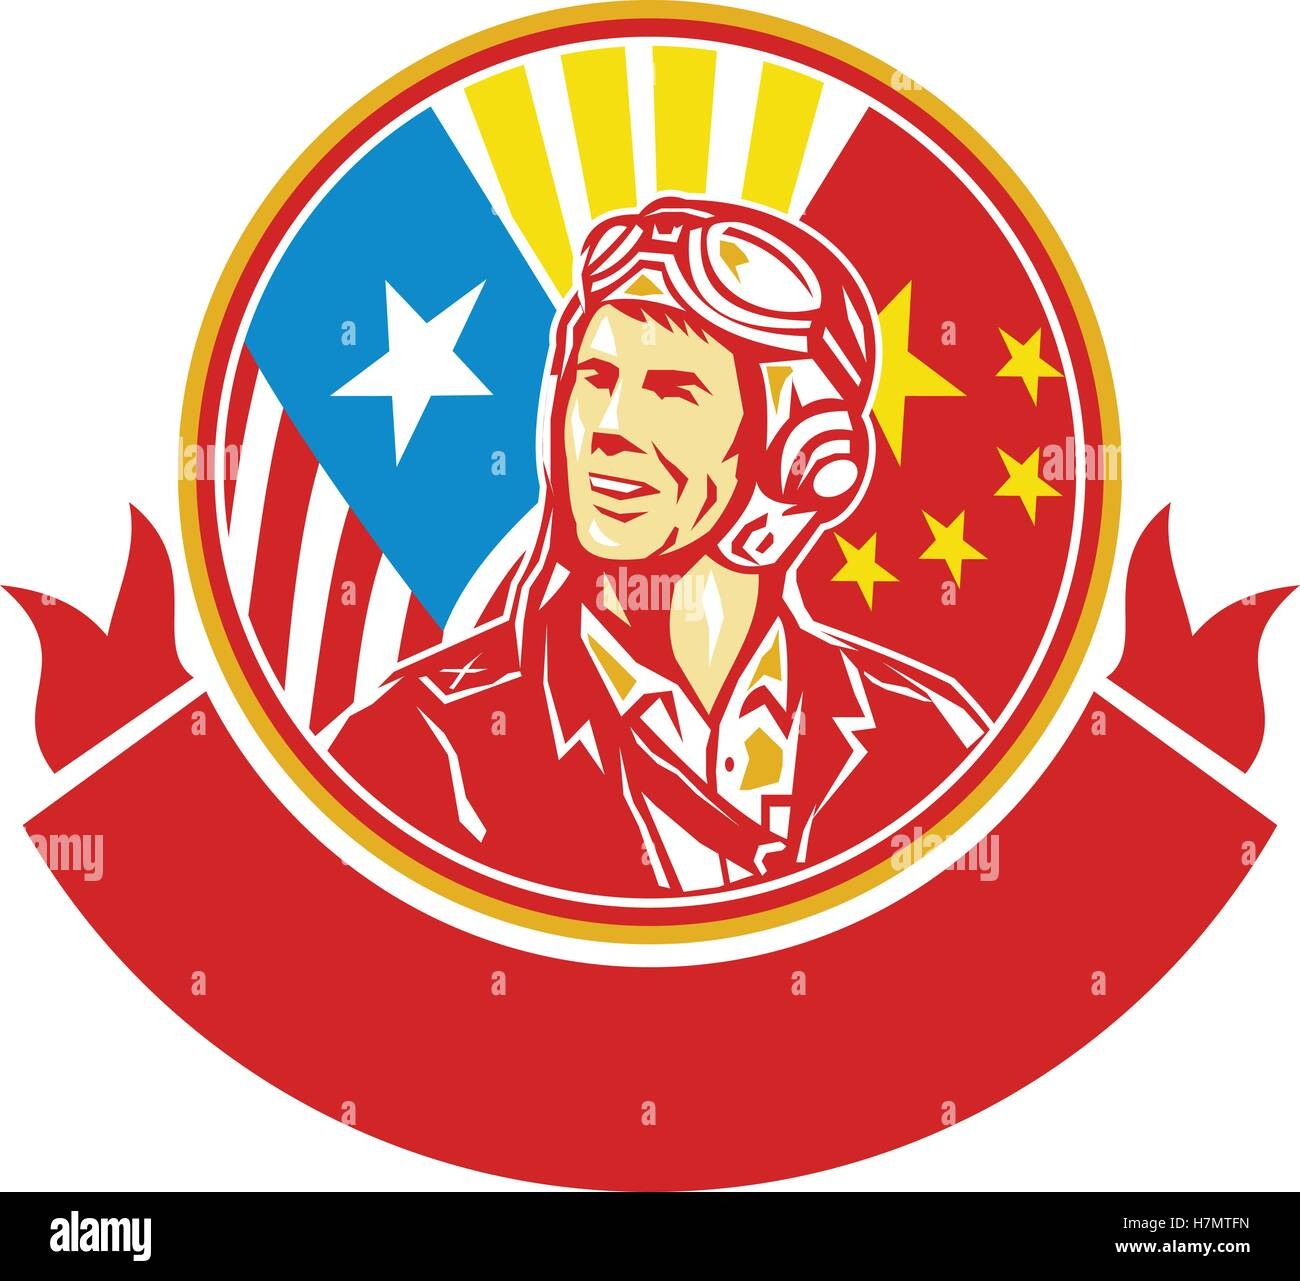 Illustration of a world war two pilot airman aviator smiling looking to the side with USA and China flags in the - Stock Vector